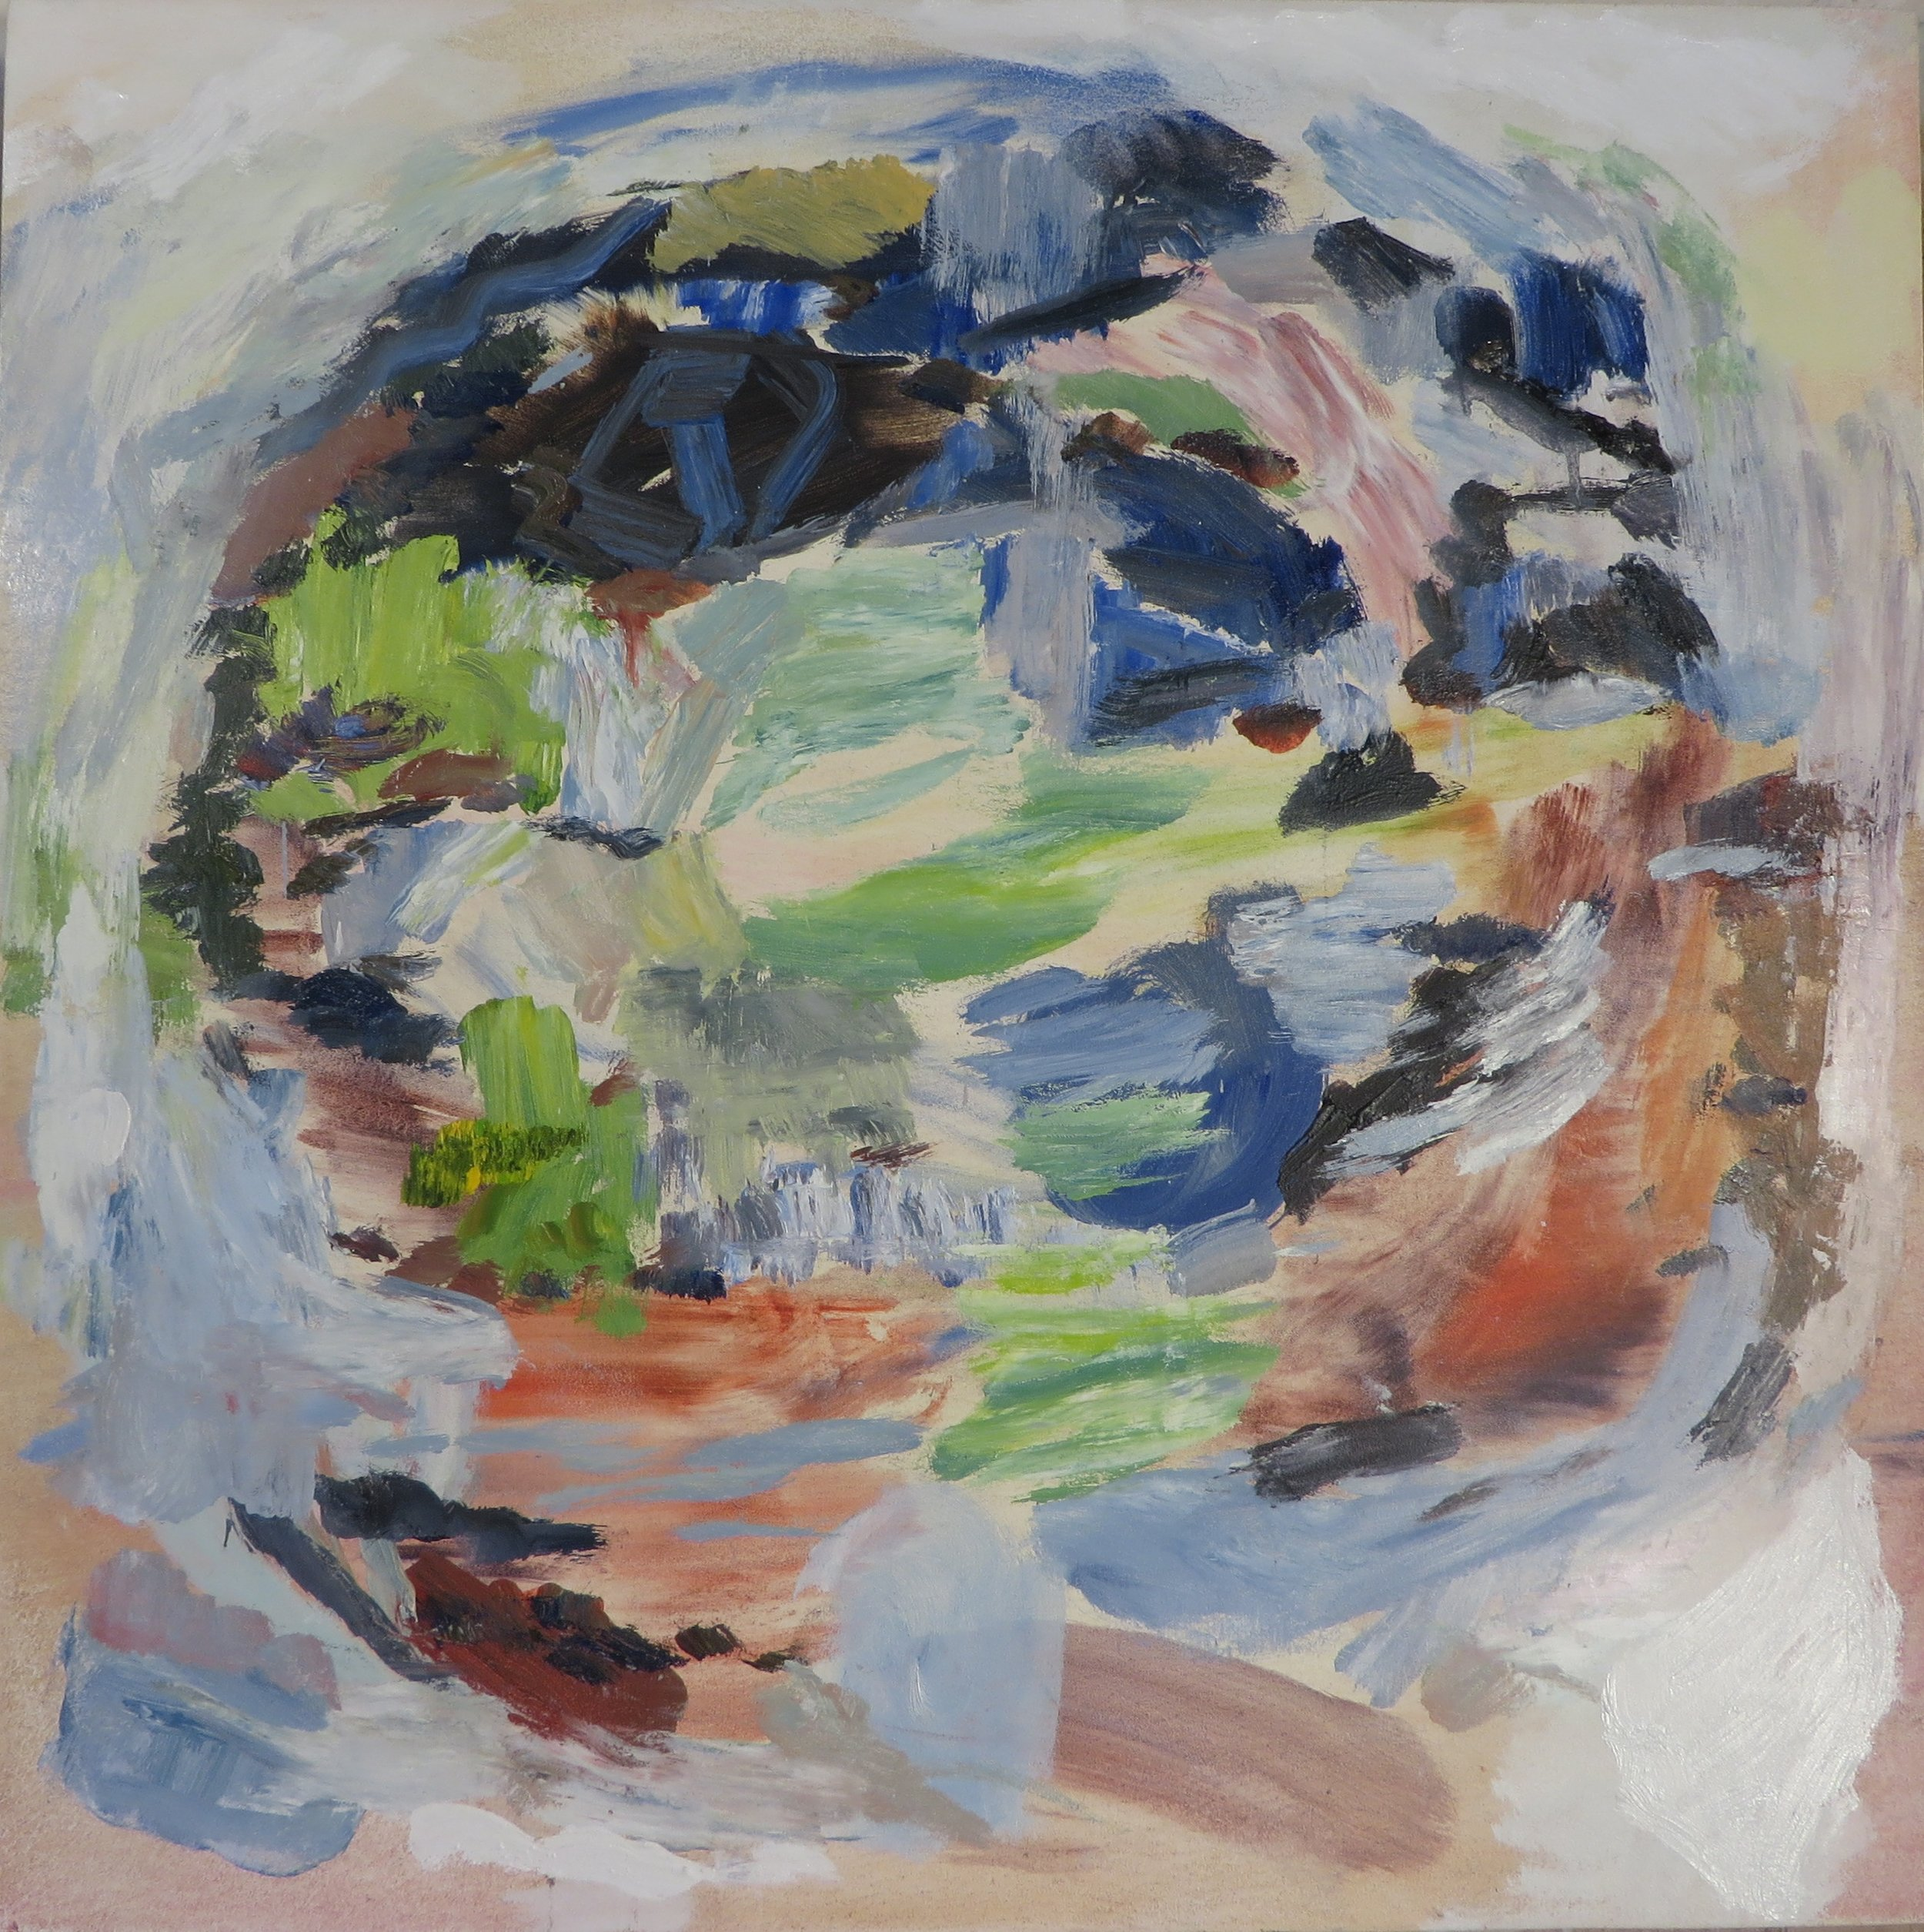 Earth Series 1, 2014